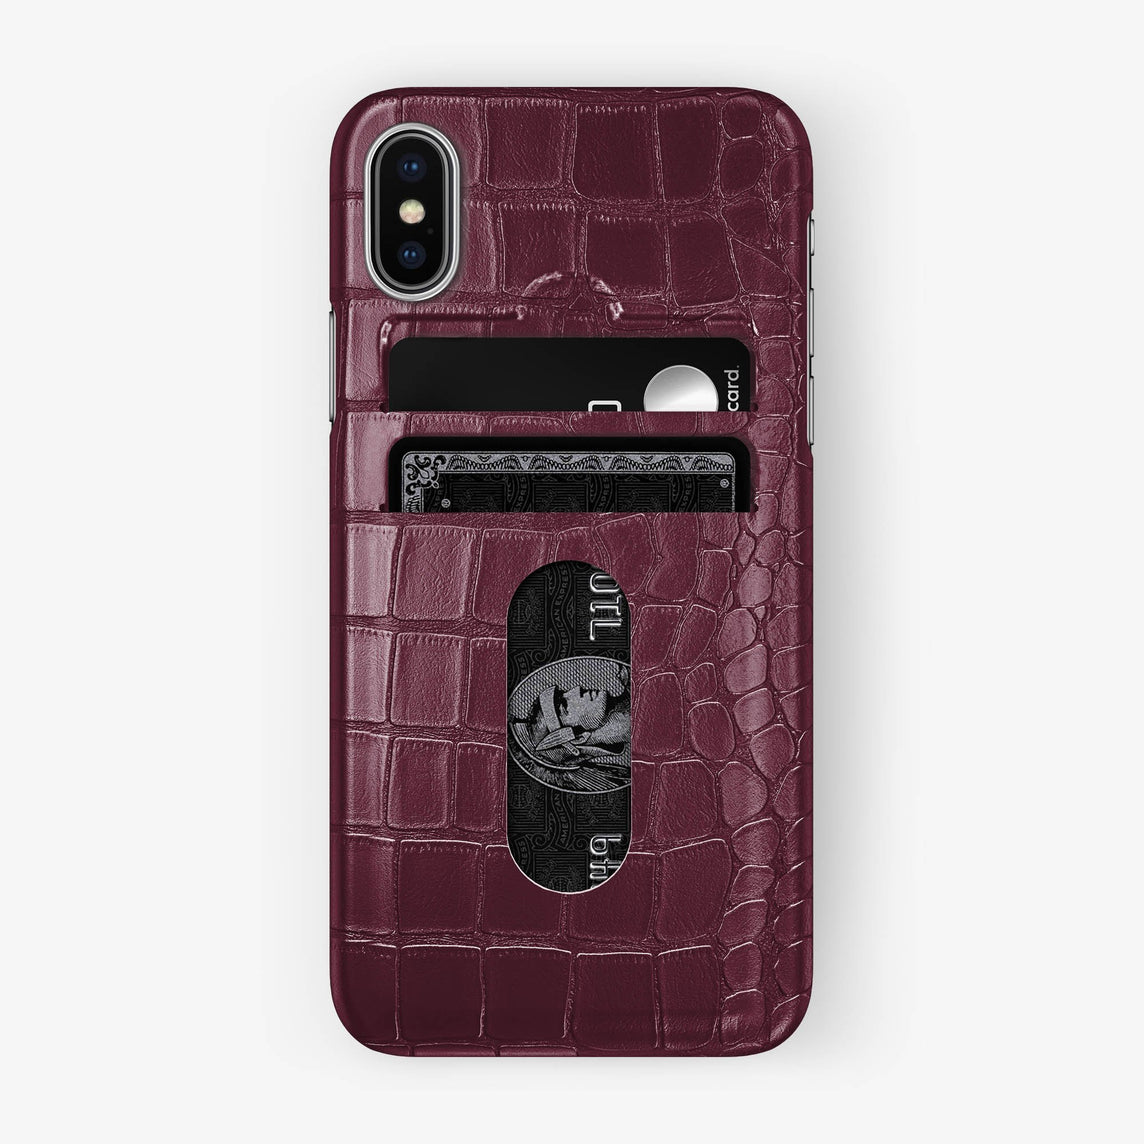 Alligator Card Holder Case iPhone X/Xs | Burgundy - Stainless Steel - Hadoro